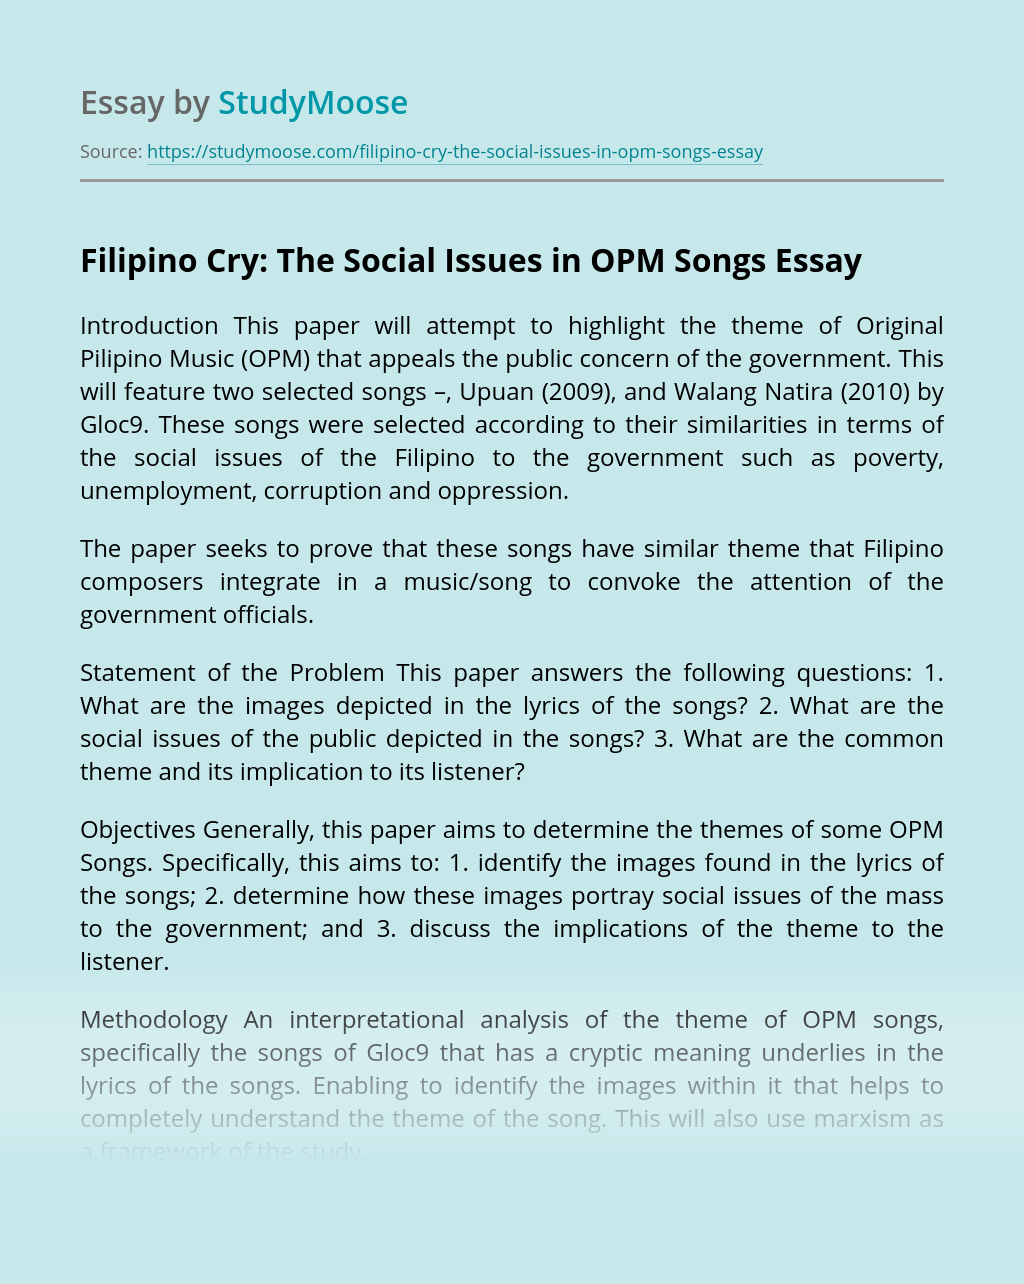 Filipino Cry: The Social Issues in OPM Songs